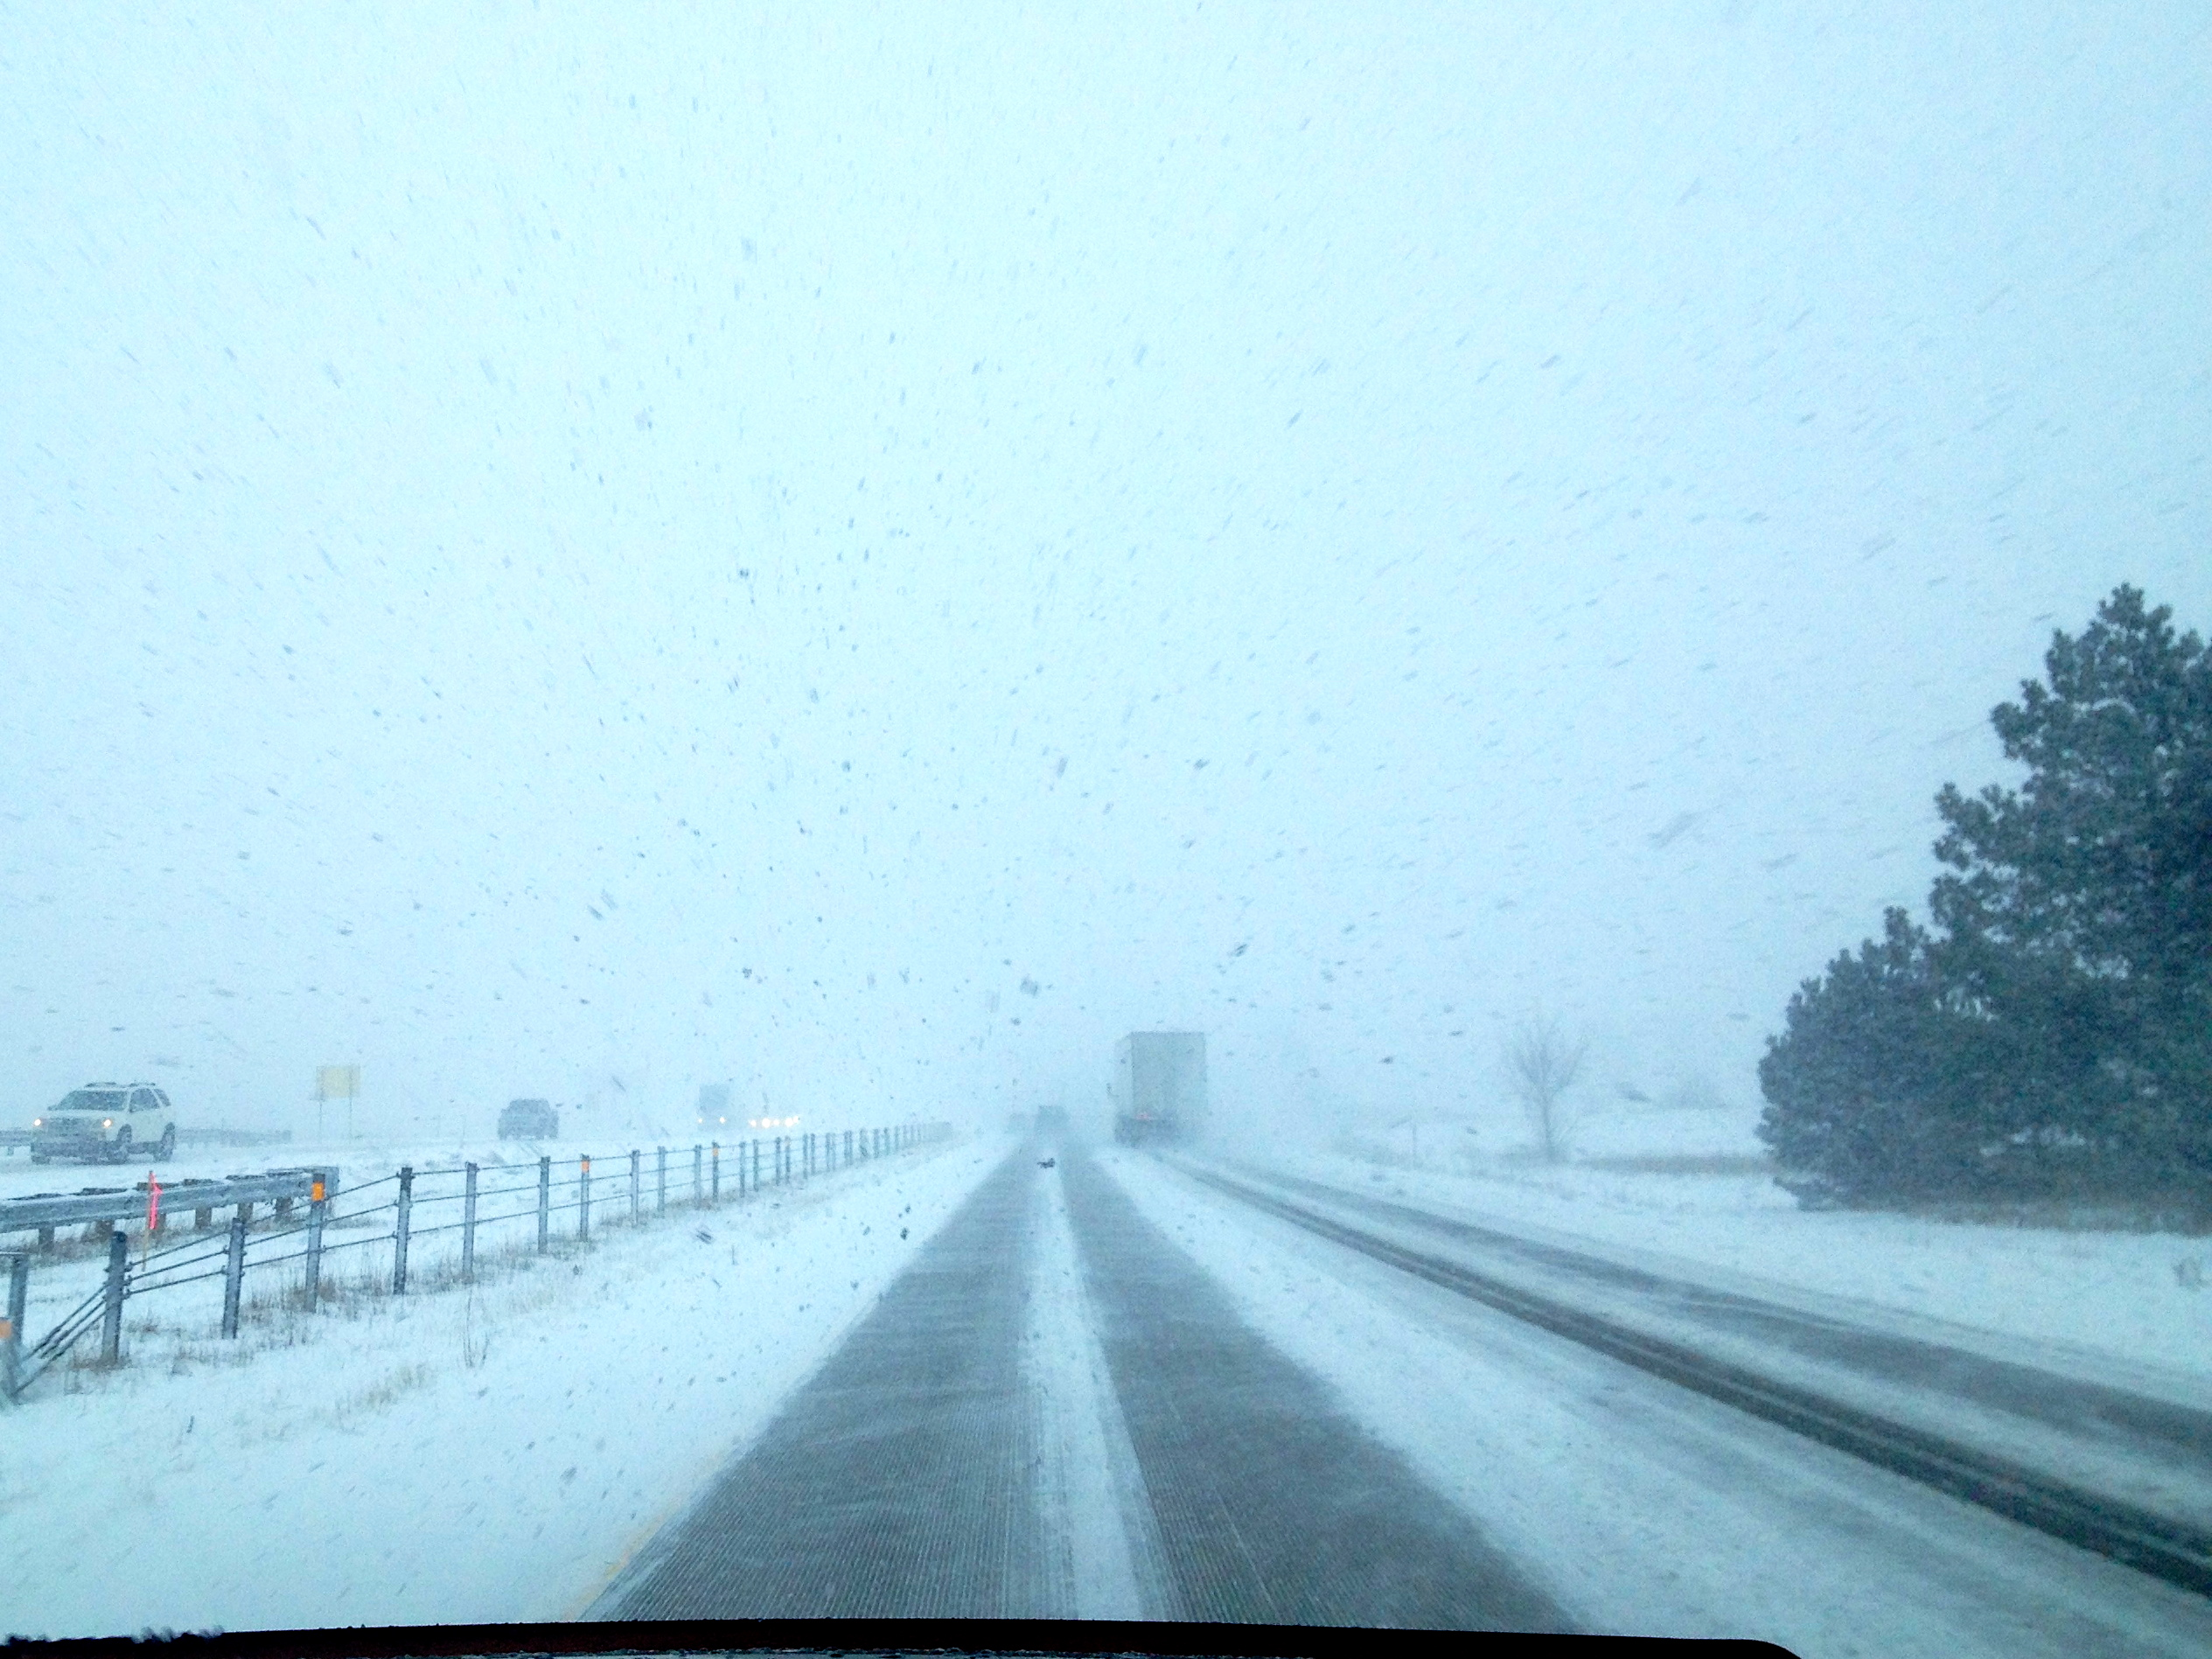 driving through snow storm